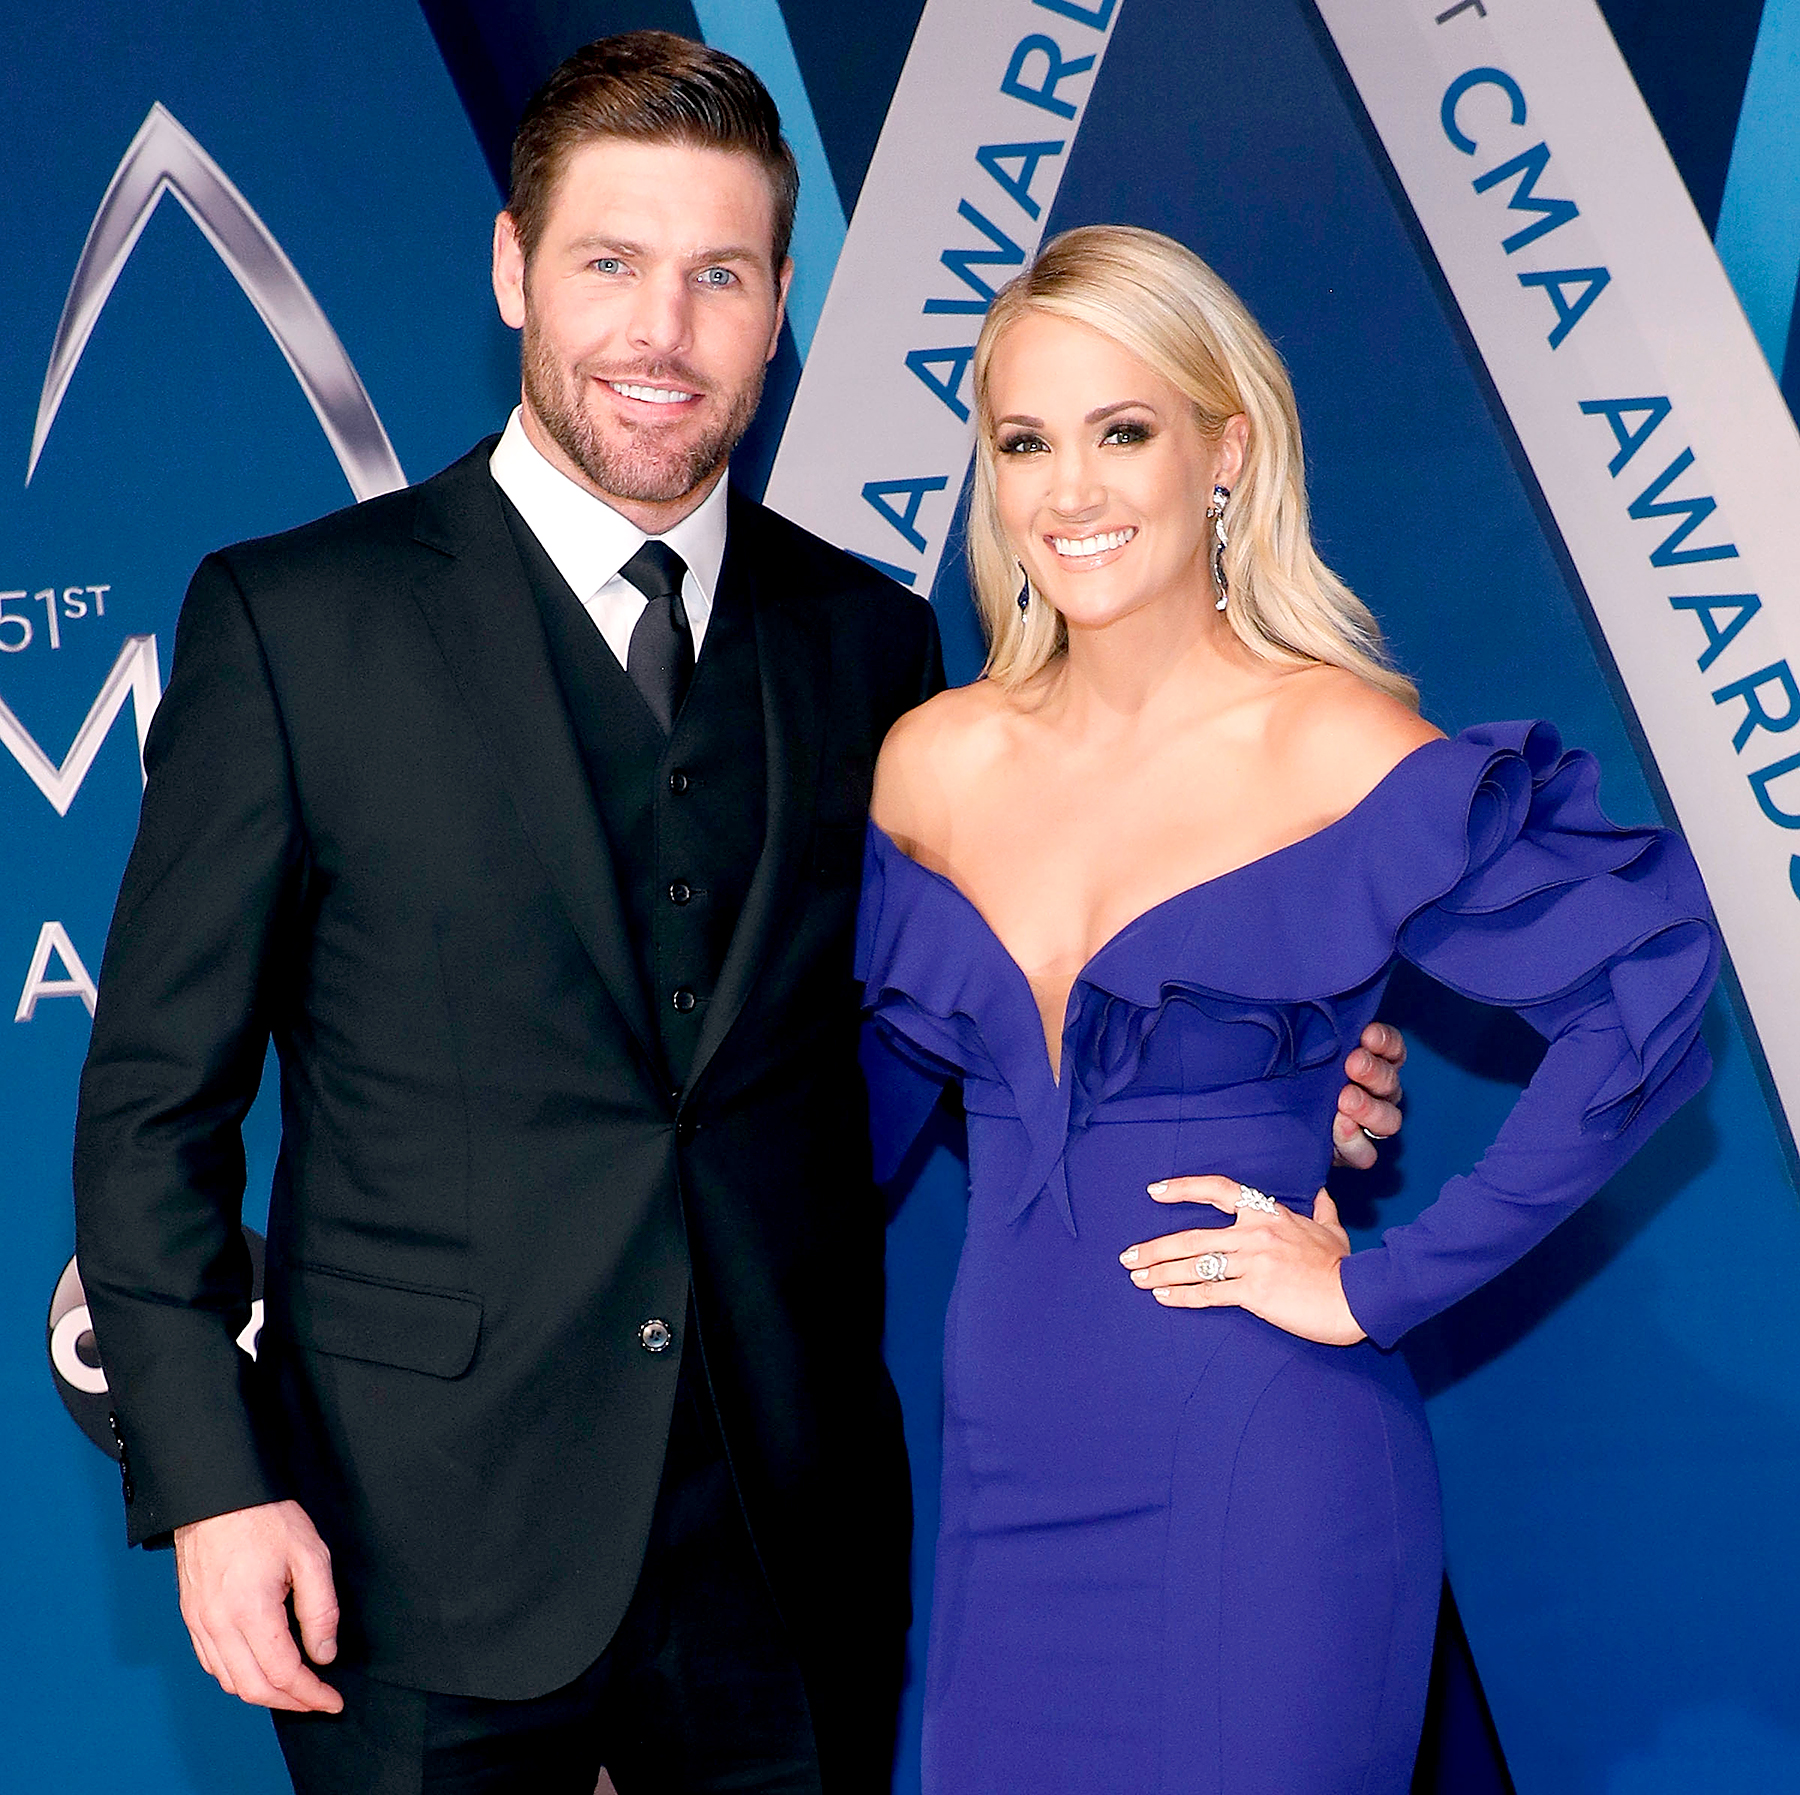 Carrie Underwood Says Husband Mike Fisher Is 'Still My Boyfriend'